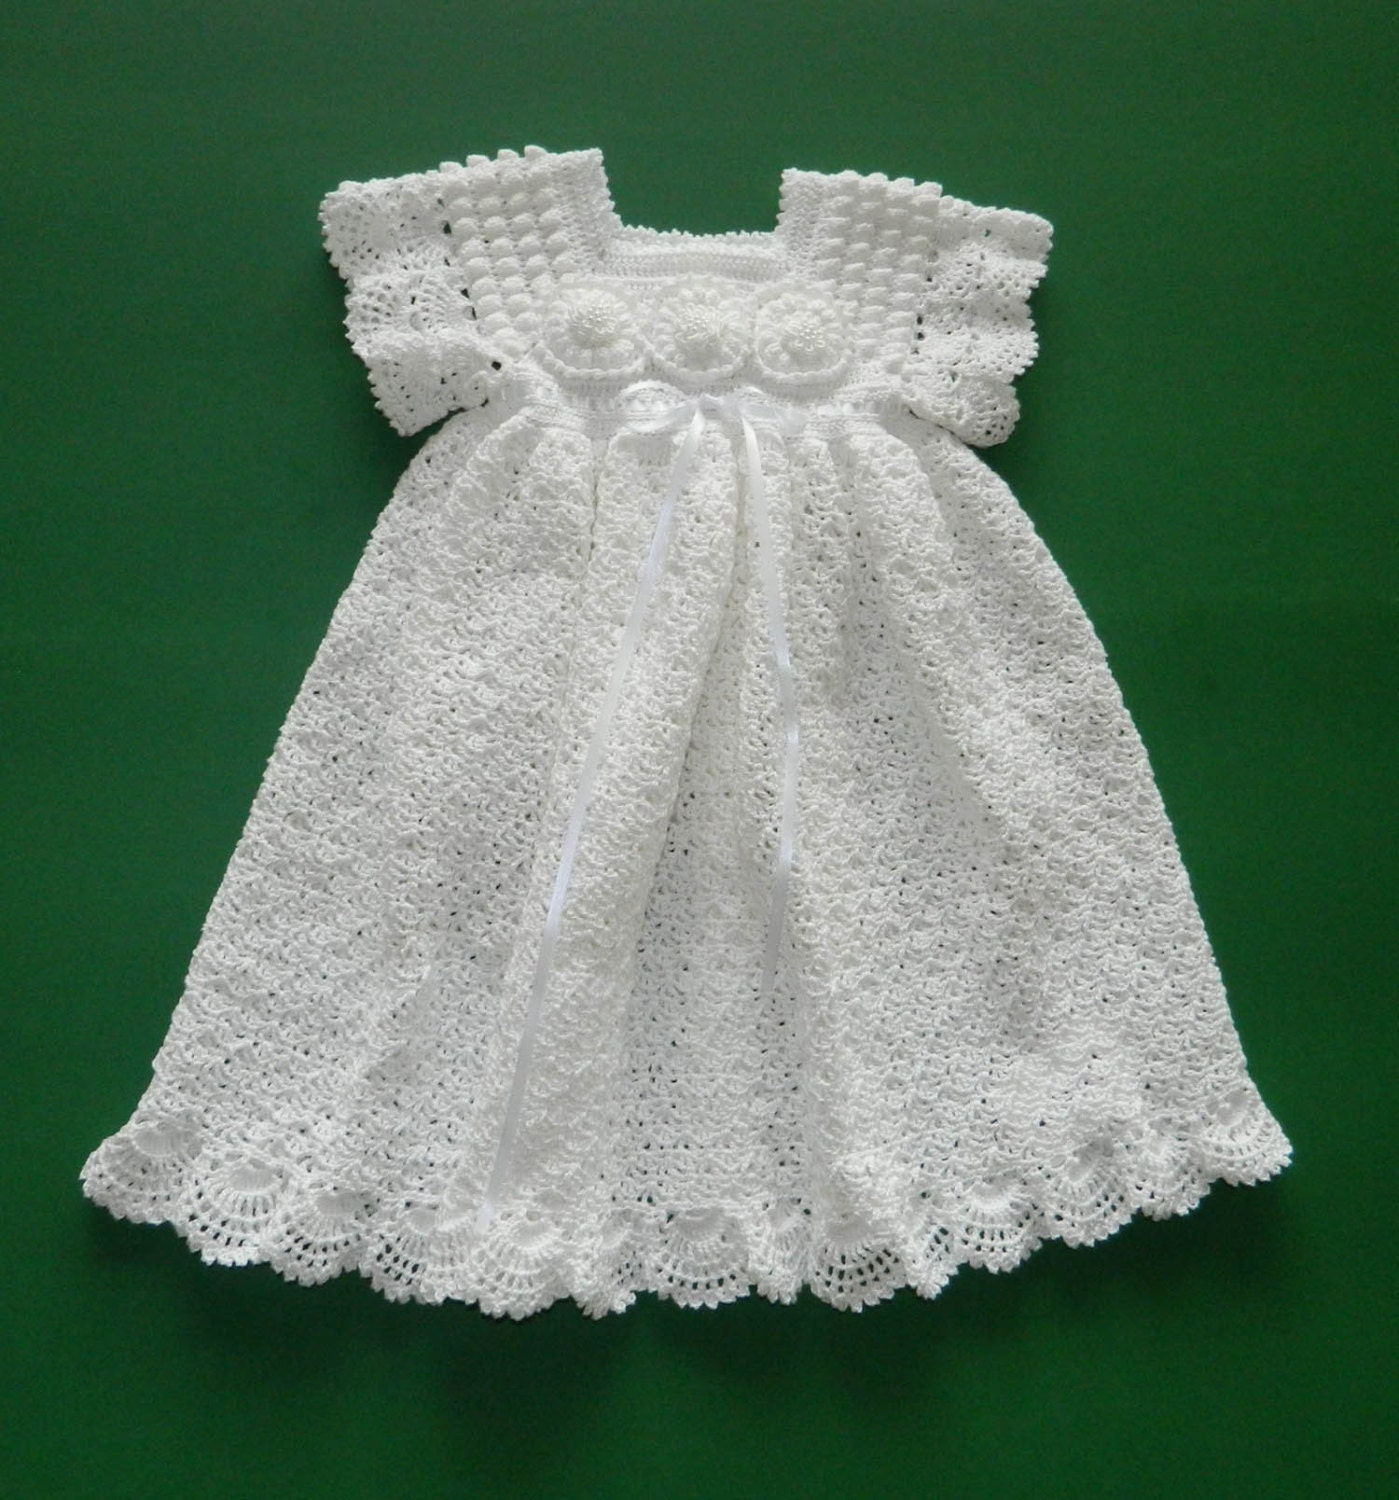 Vintage Crochet Christening Gown Floral Infant Dress Pattern USA 1